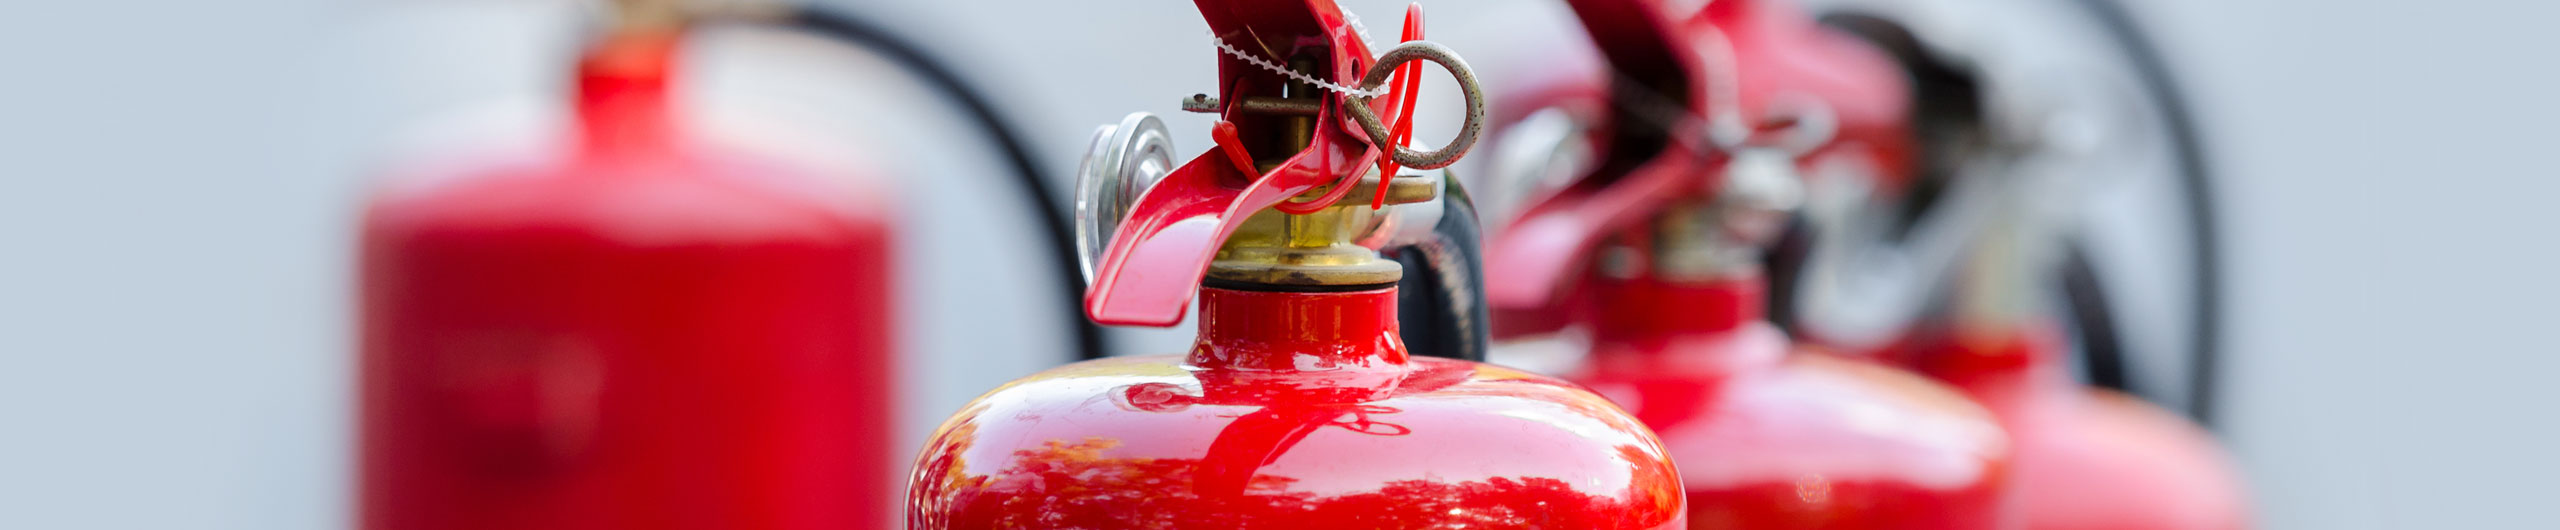 Fire extinguisher installation and maintenance